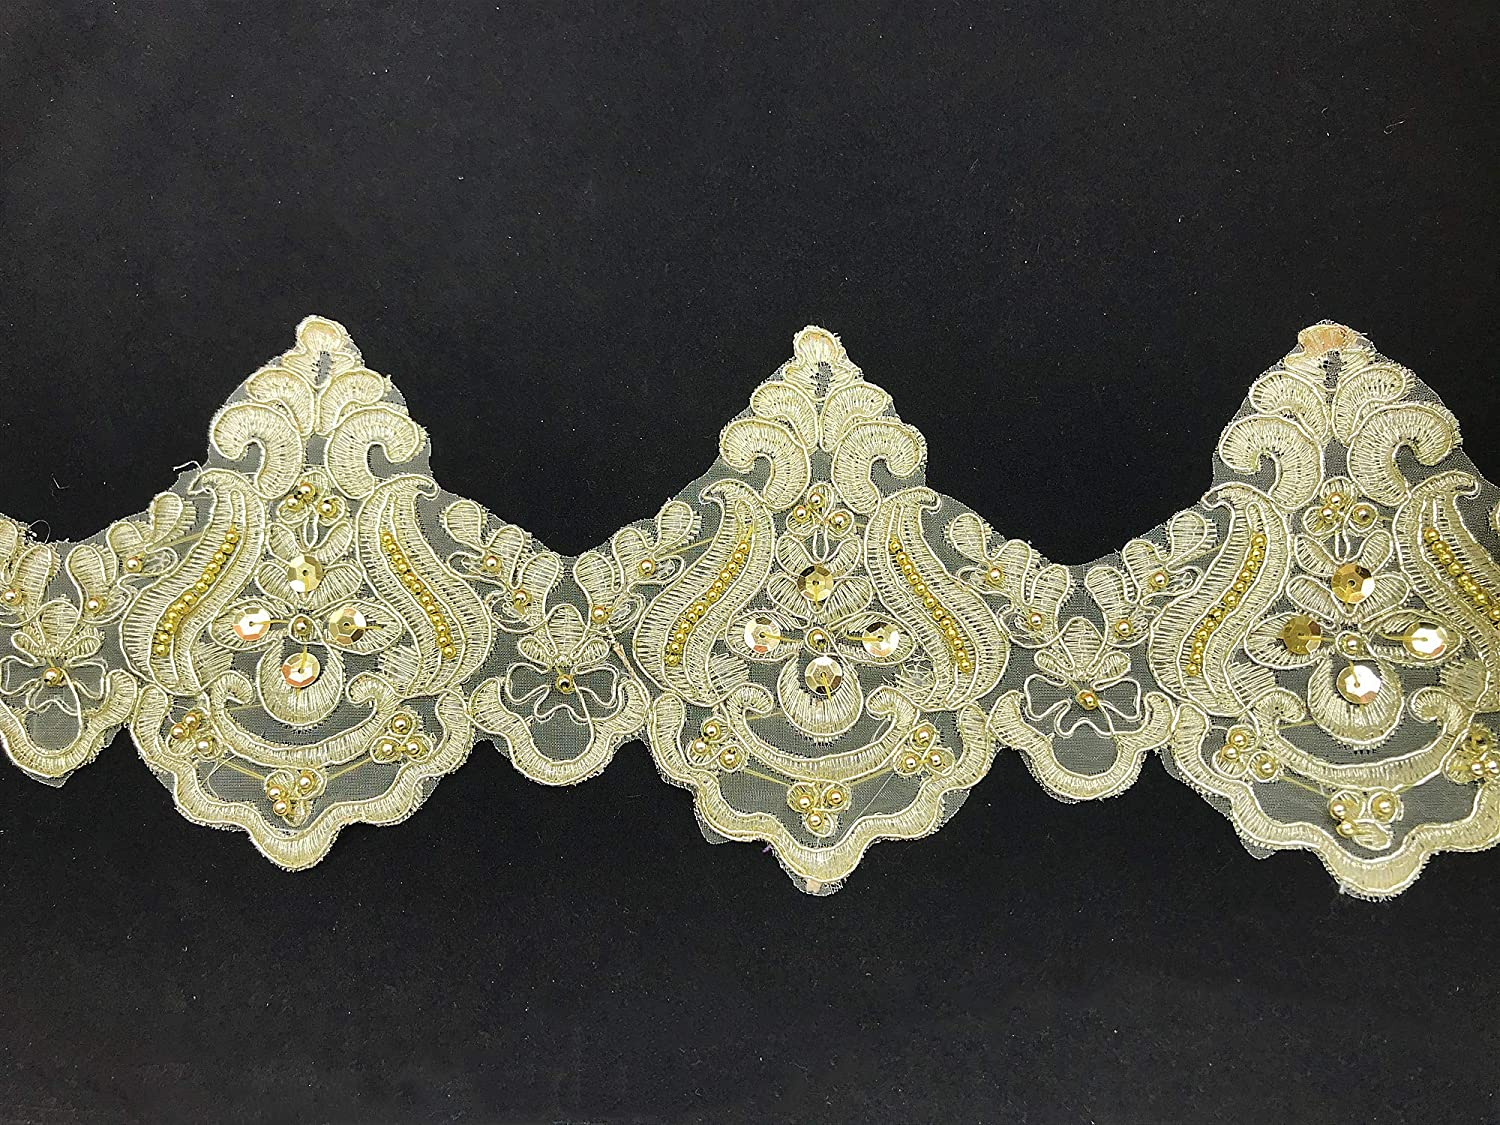 13CM Width Bead Special sale item Wave Pattern price Inelastic Embroidery Curt Trim Lace